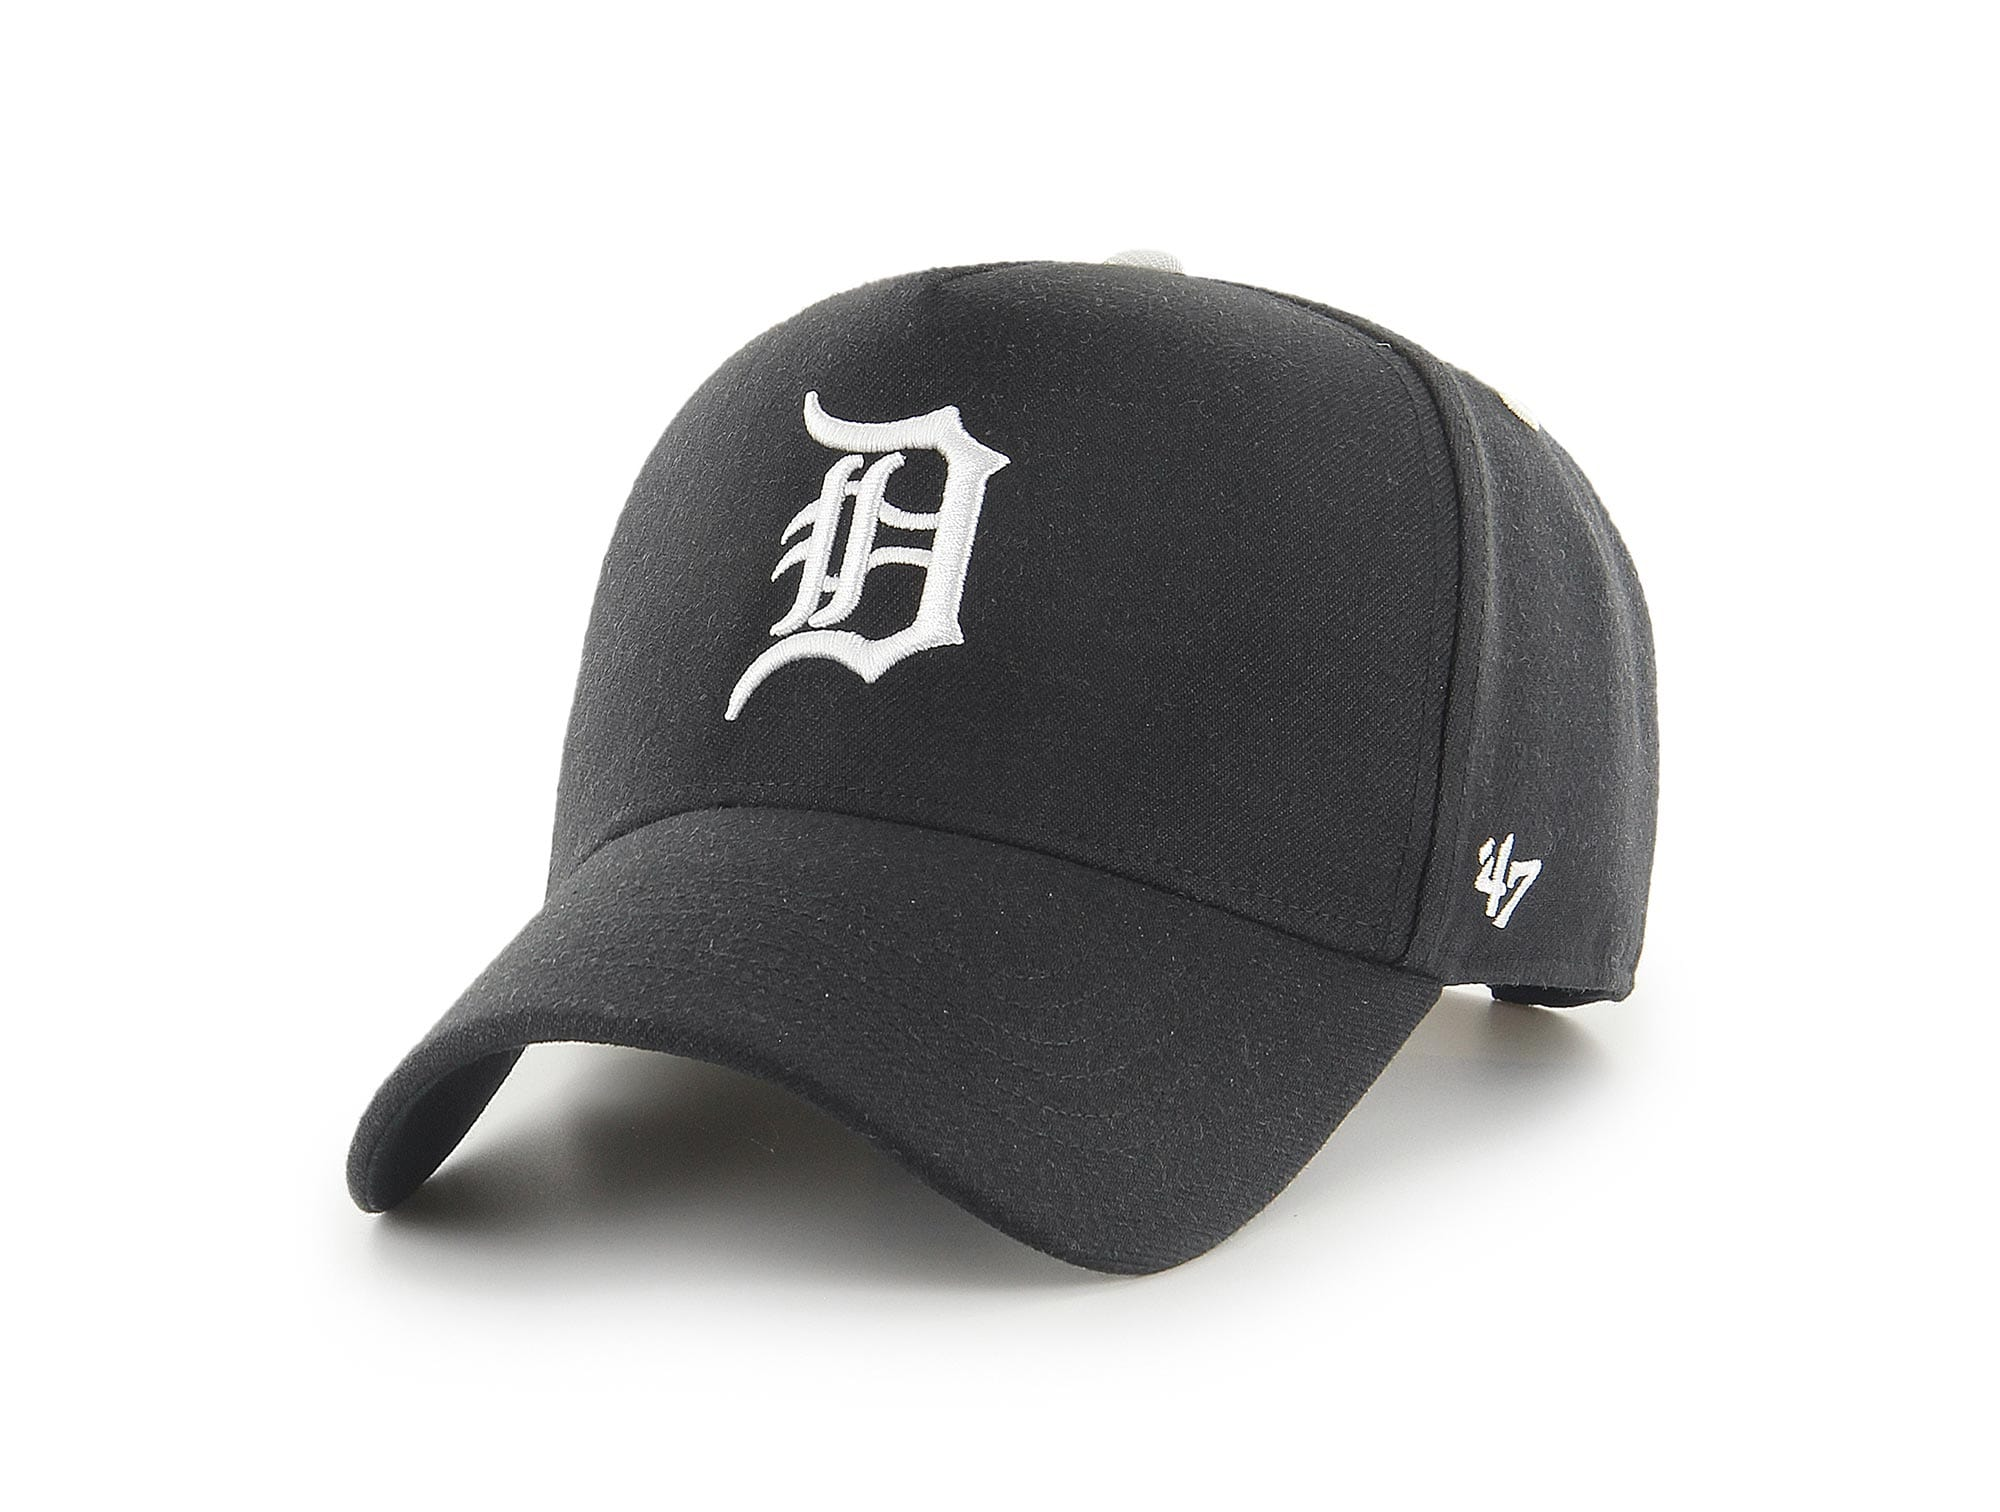 Jockey 47 Detroit Tiger Republica Hombre Negro